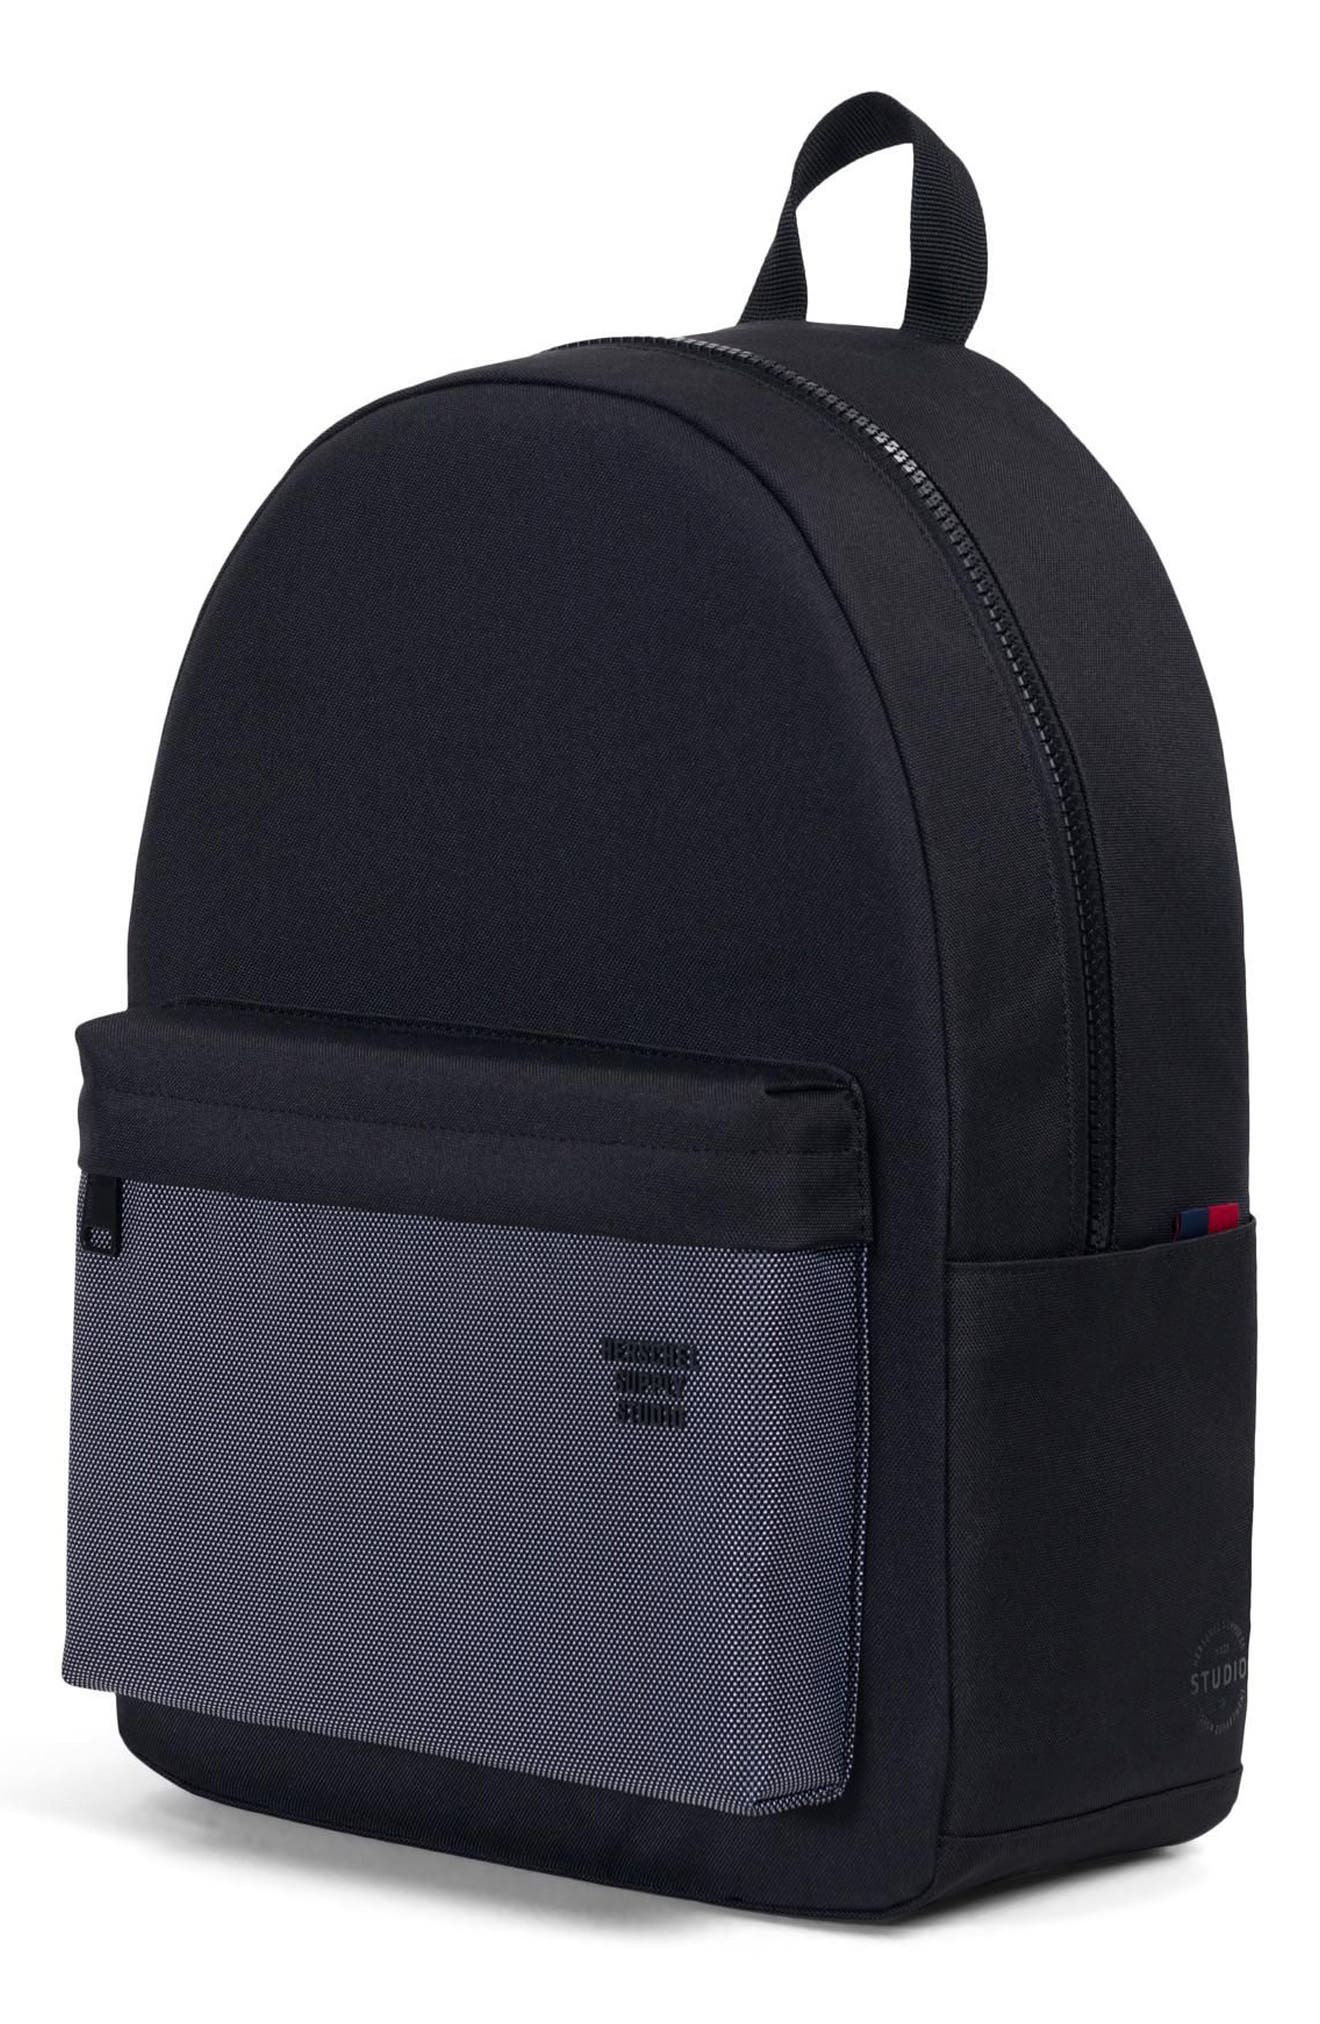 HERSCHEL SUPPLY CO.,                             Studio Winlaw XL Backpack,                             Alternate thumbnail 4, color,                             001